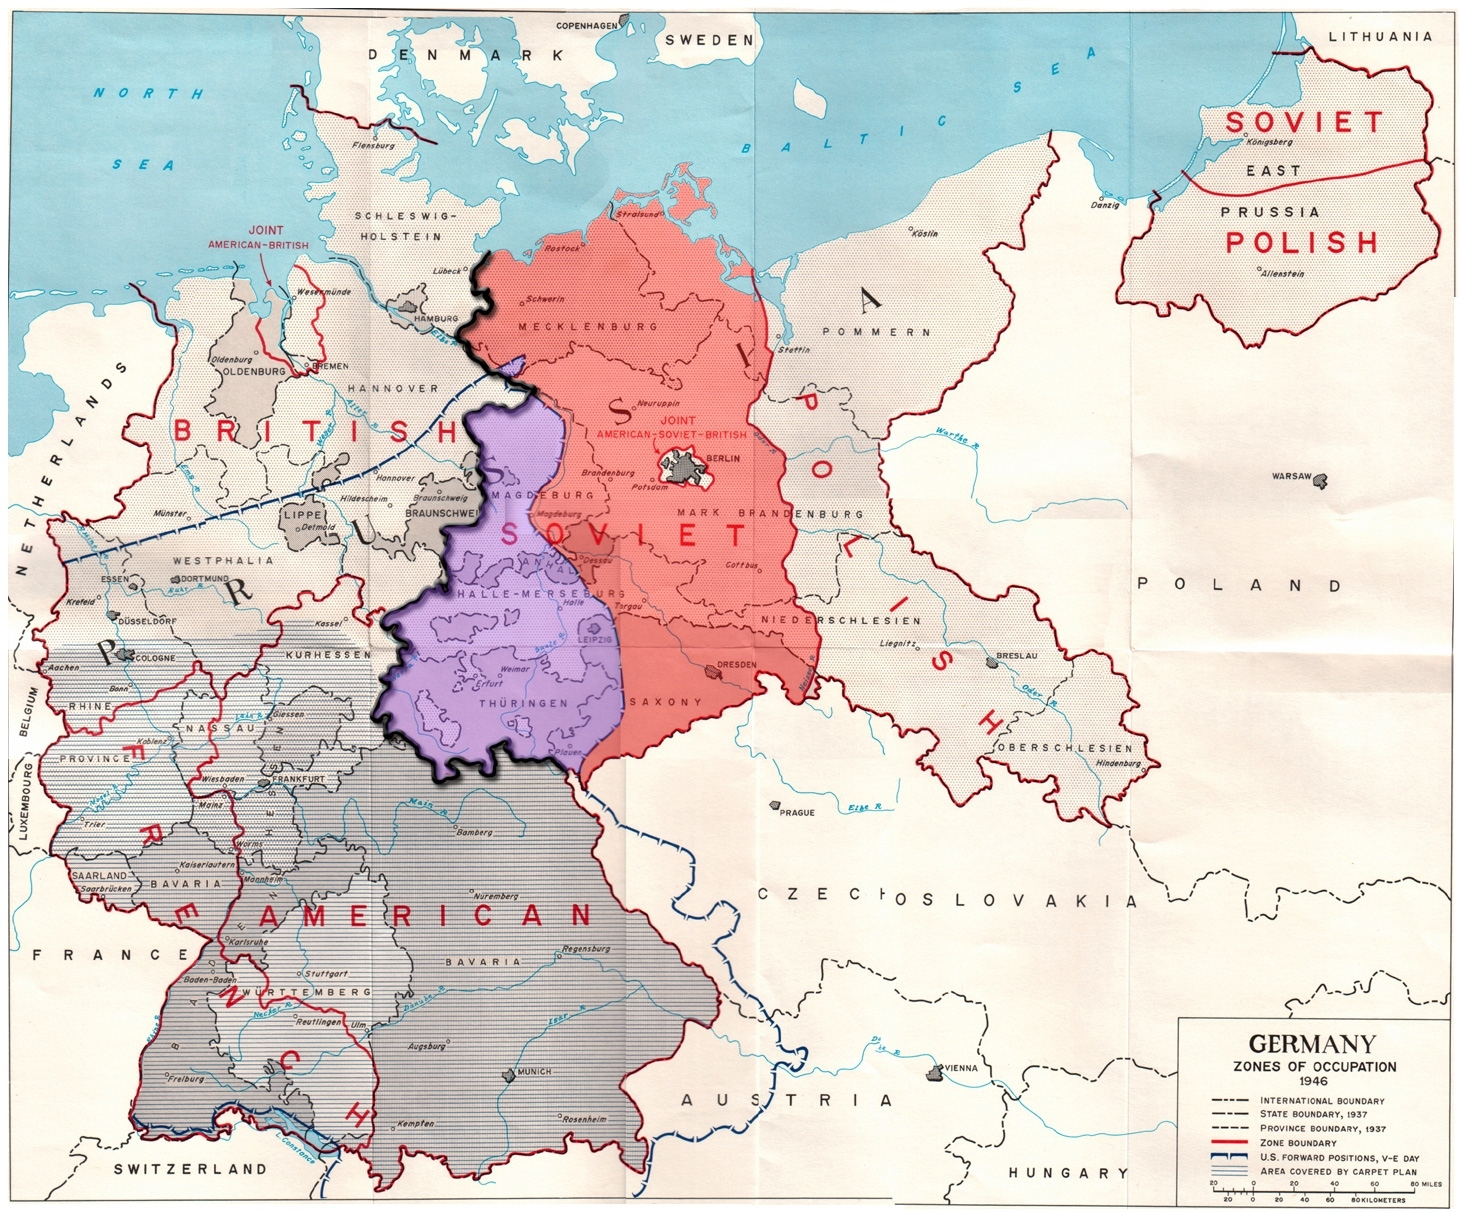 File:germany Occupation Zones With Border - Wikimedia Commons for East And West Germany Border Map